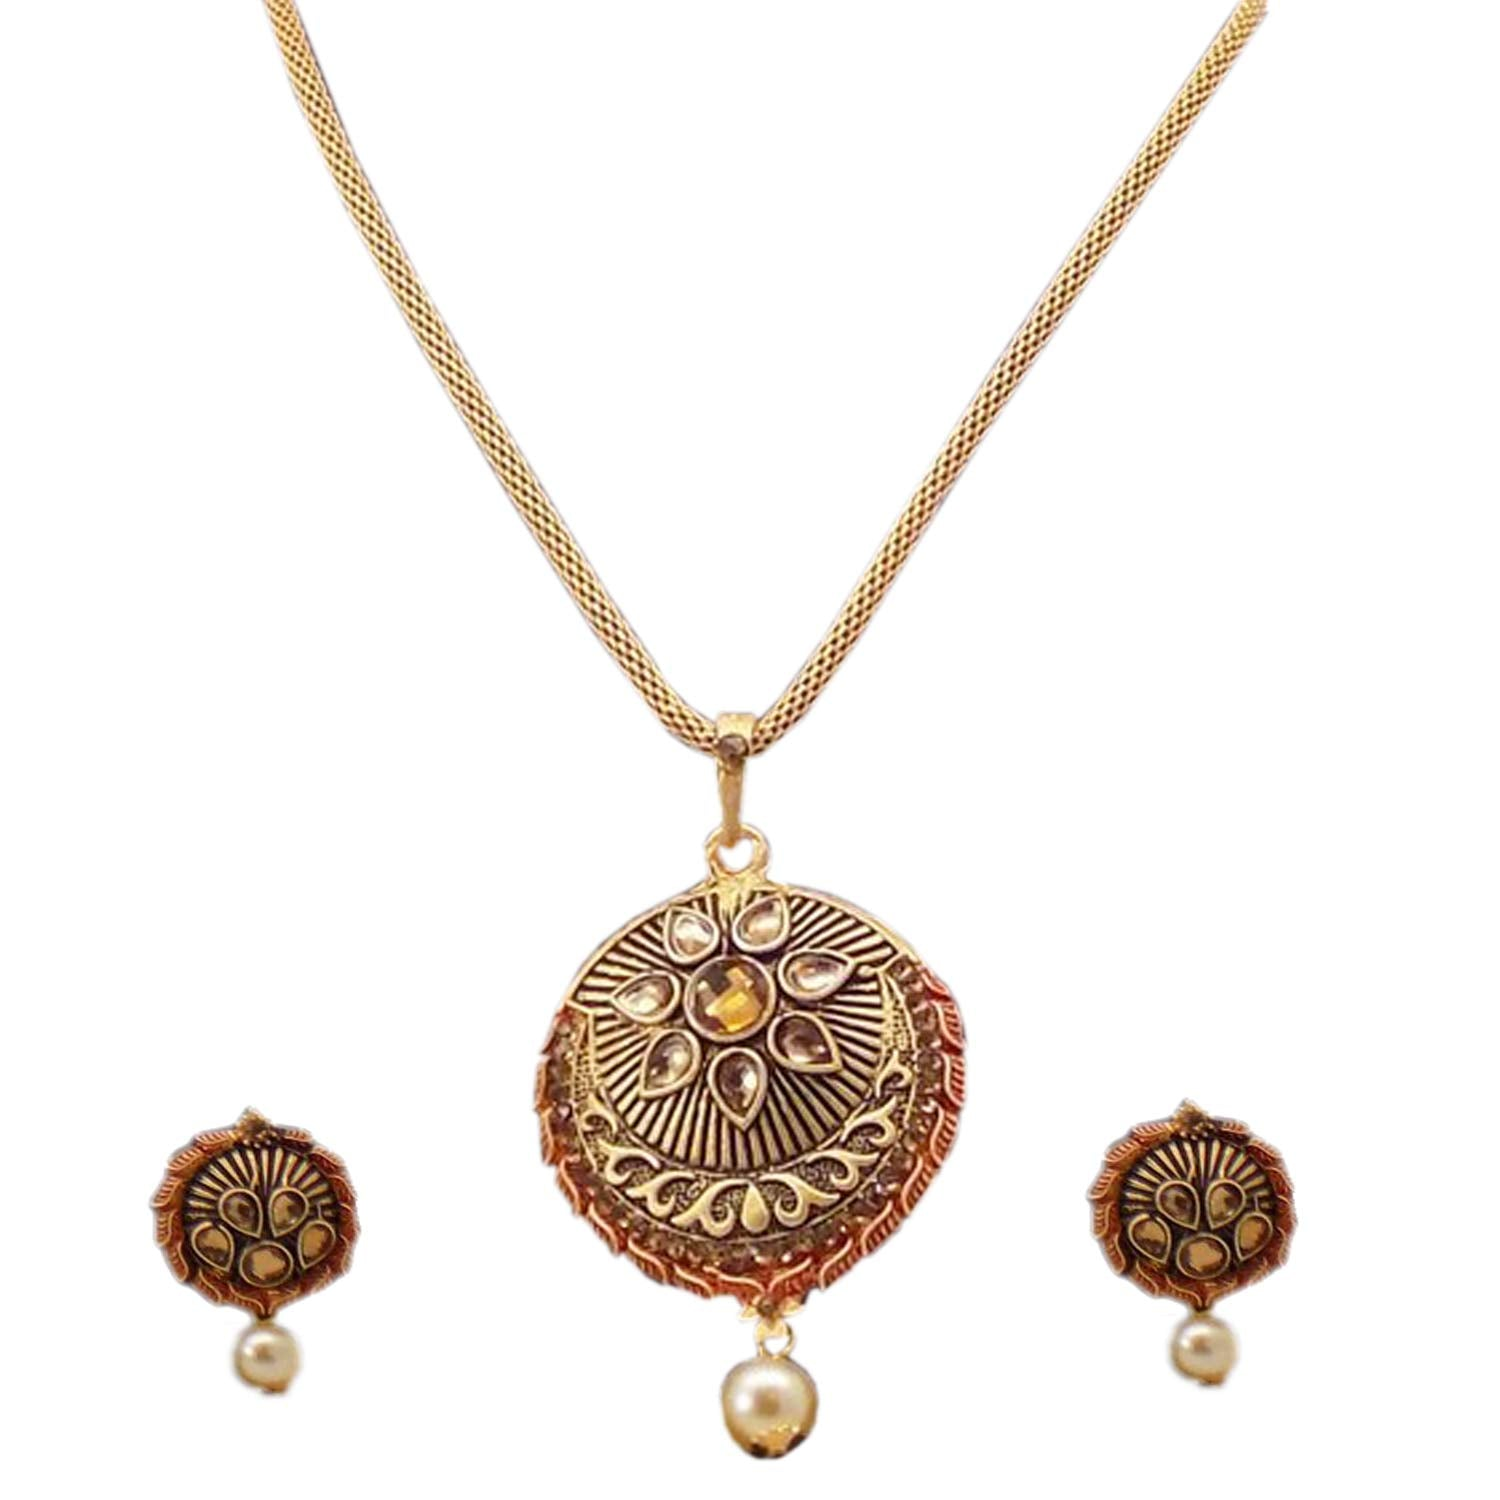 Pendant Necklace Set / Jewelry Set with Earring - Bagaholics Gift